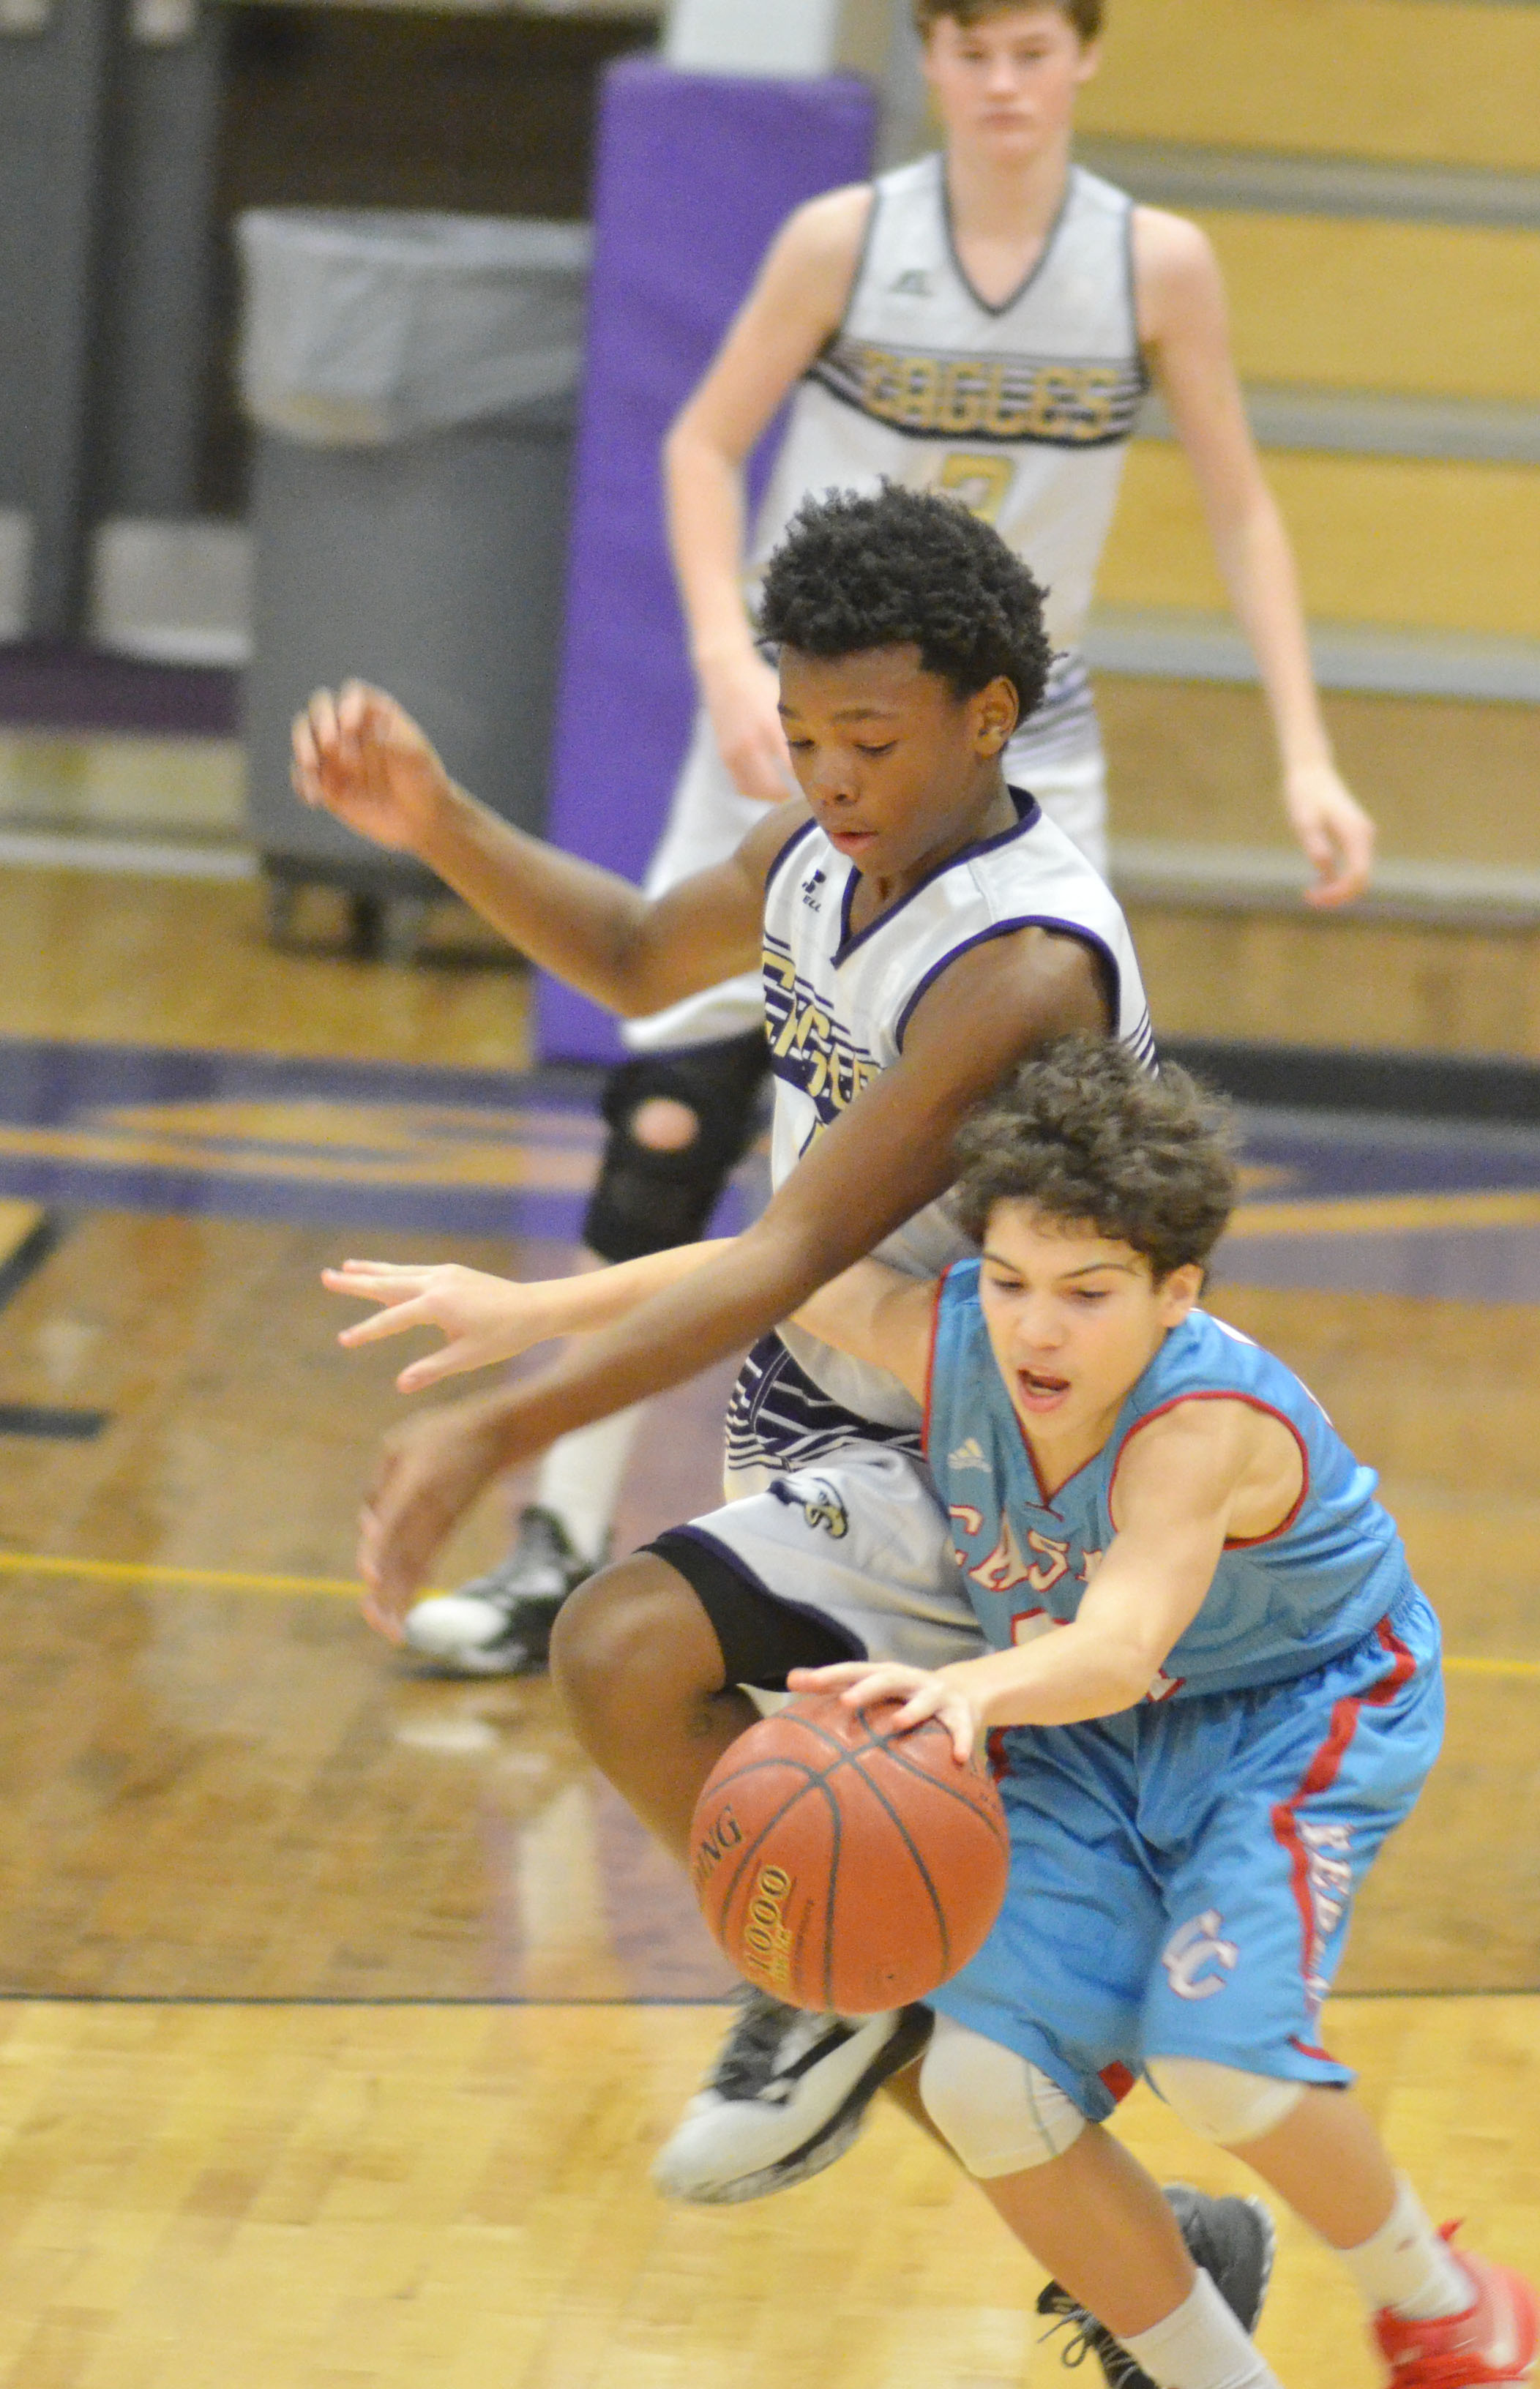 CMS eighth-grader Saevon Buckner battles for the ball.